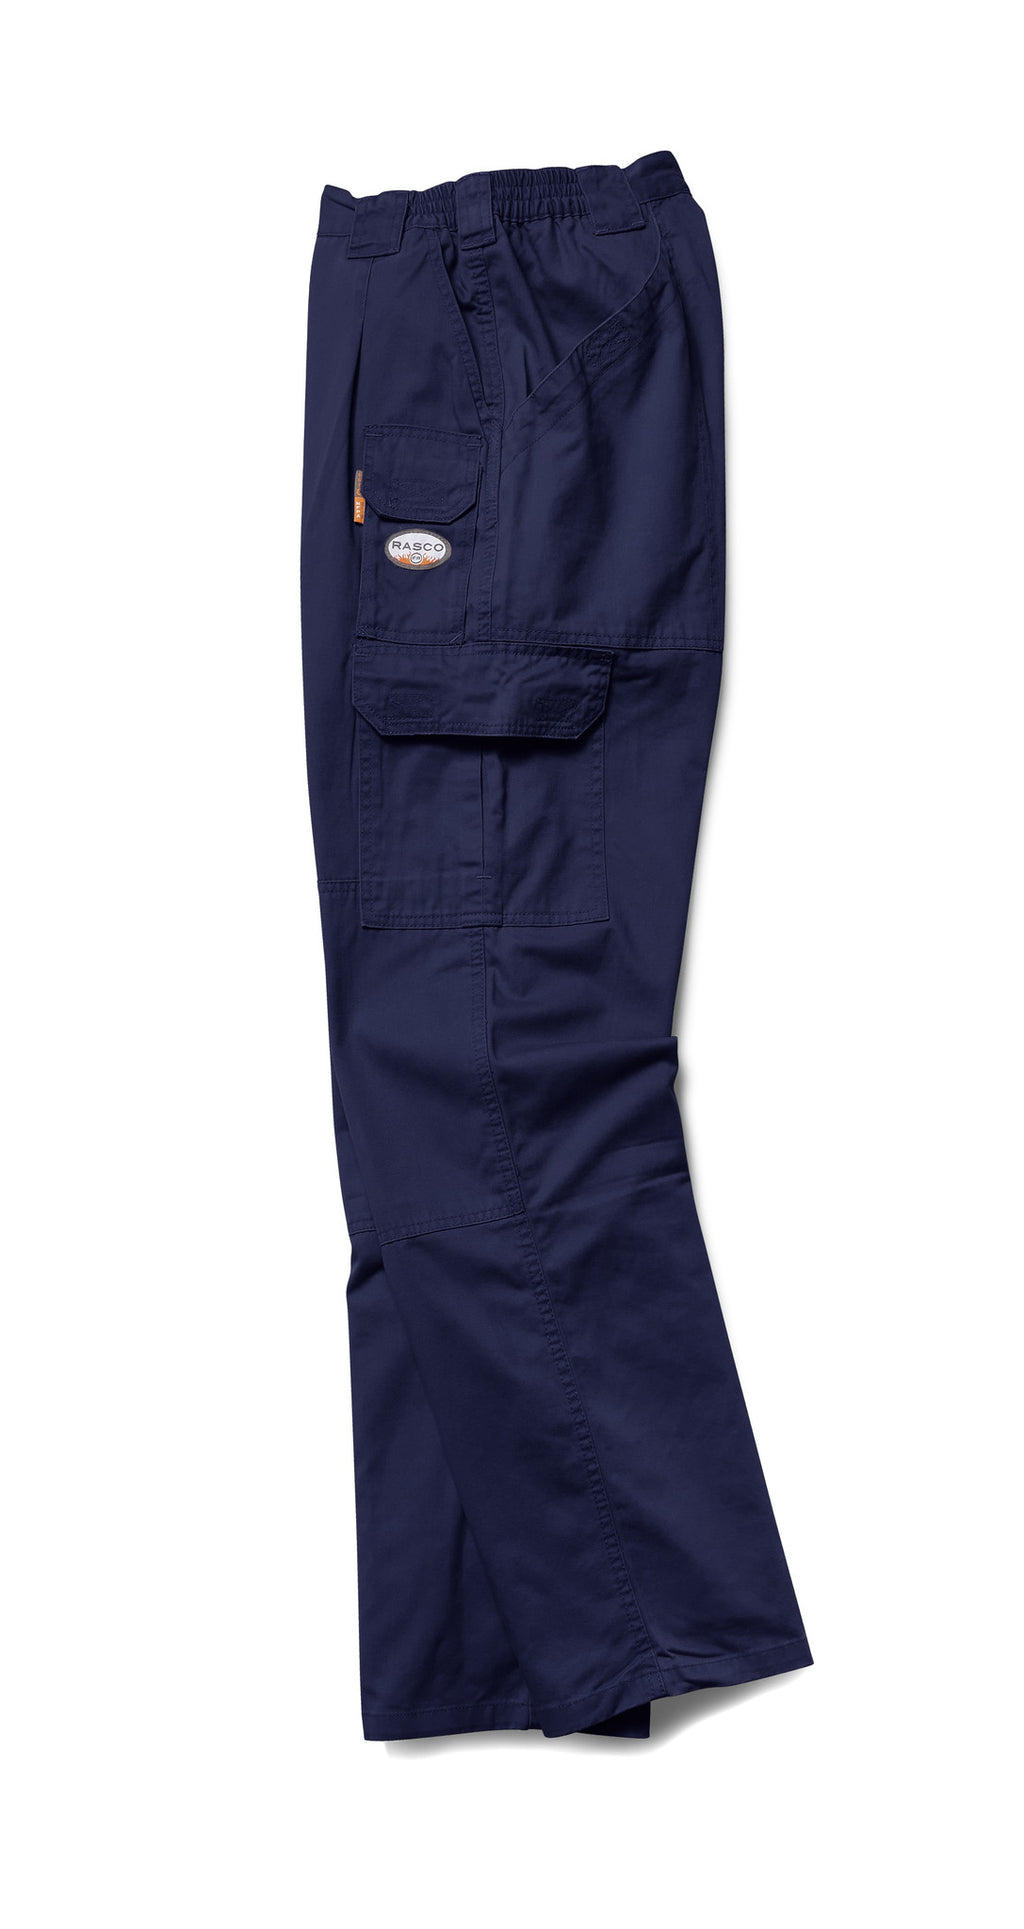 Rasco FR Navy Field Pants Waist Size- 36